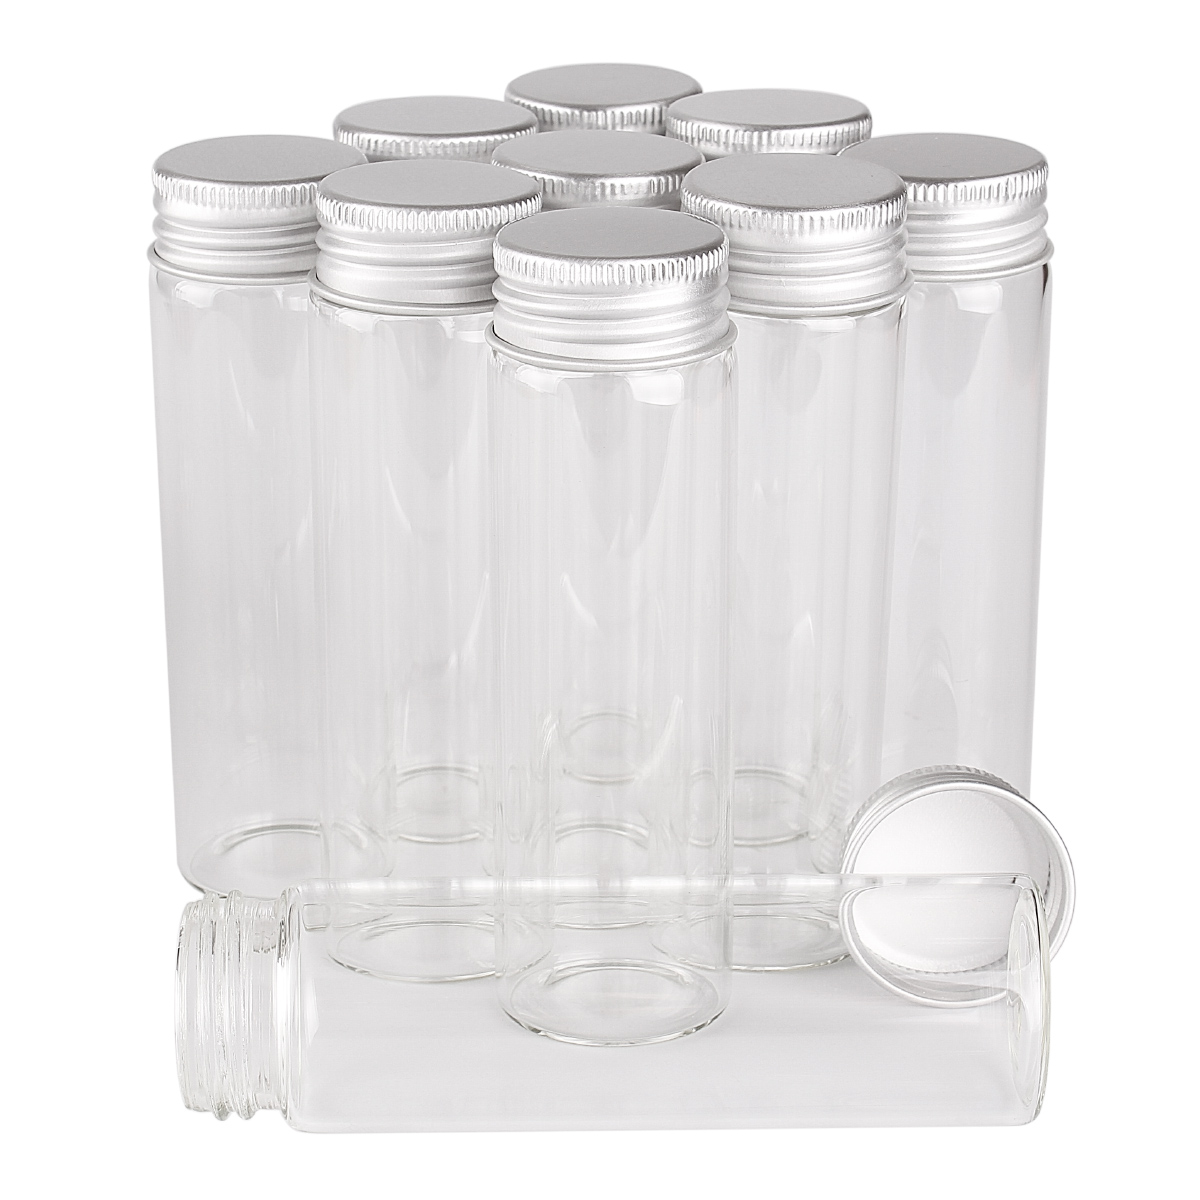 48 Pieces 50ml Glass Bottles with Aluminum Lids <font><b>30</b></font>*100mm Glass Jars for Wedding Crafts Gift image